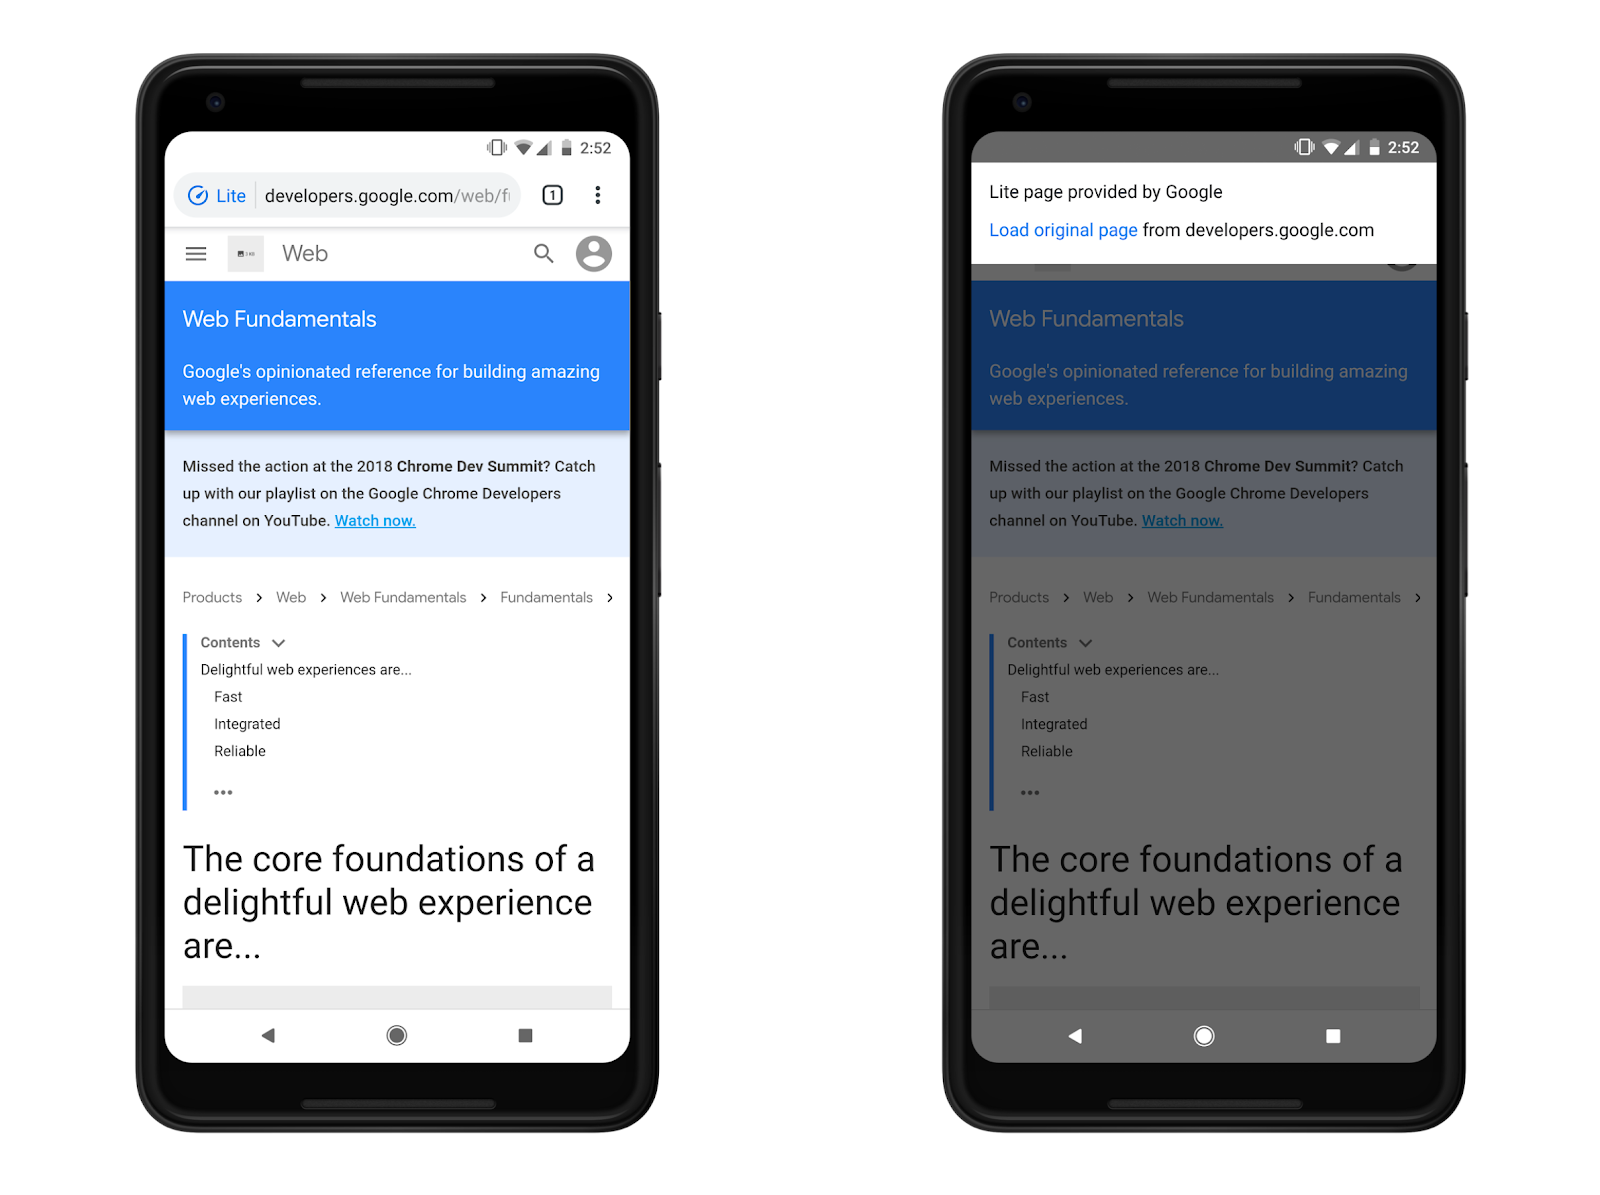 Chrome for Android's 'Data Saver' now 'Lite mode' - 9to5Google